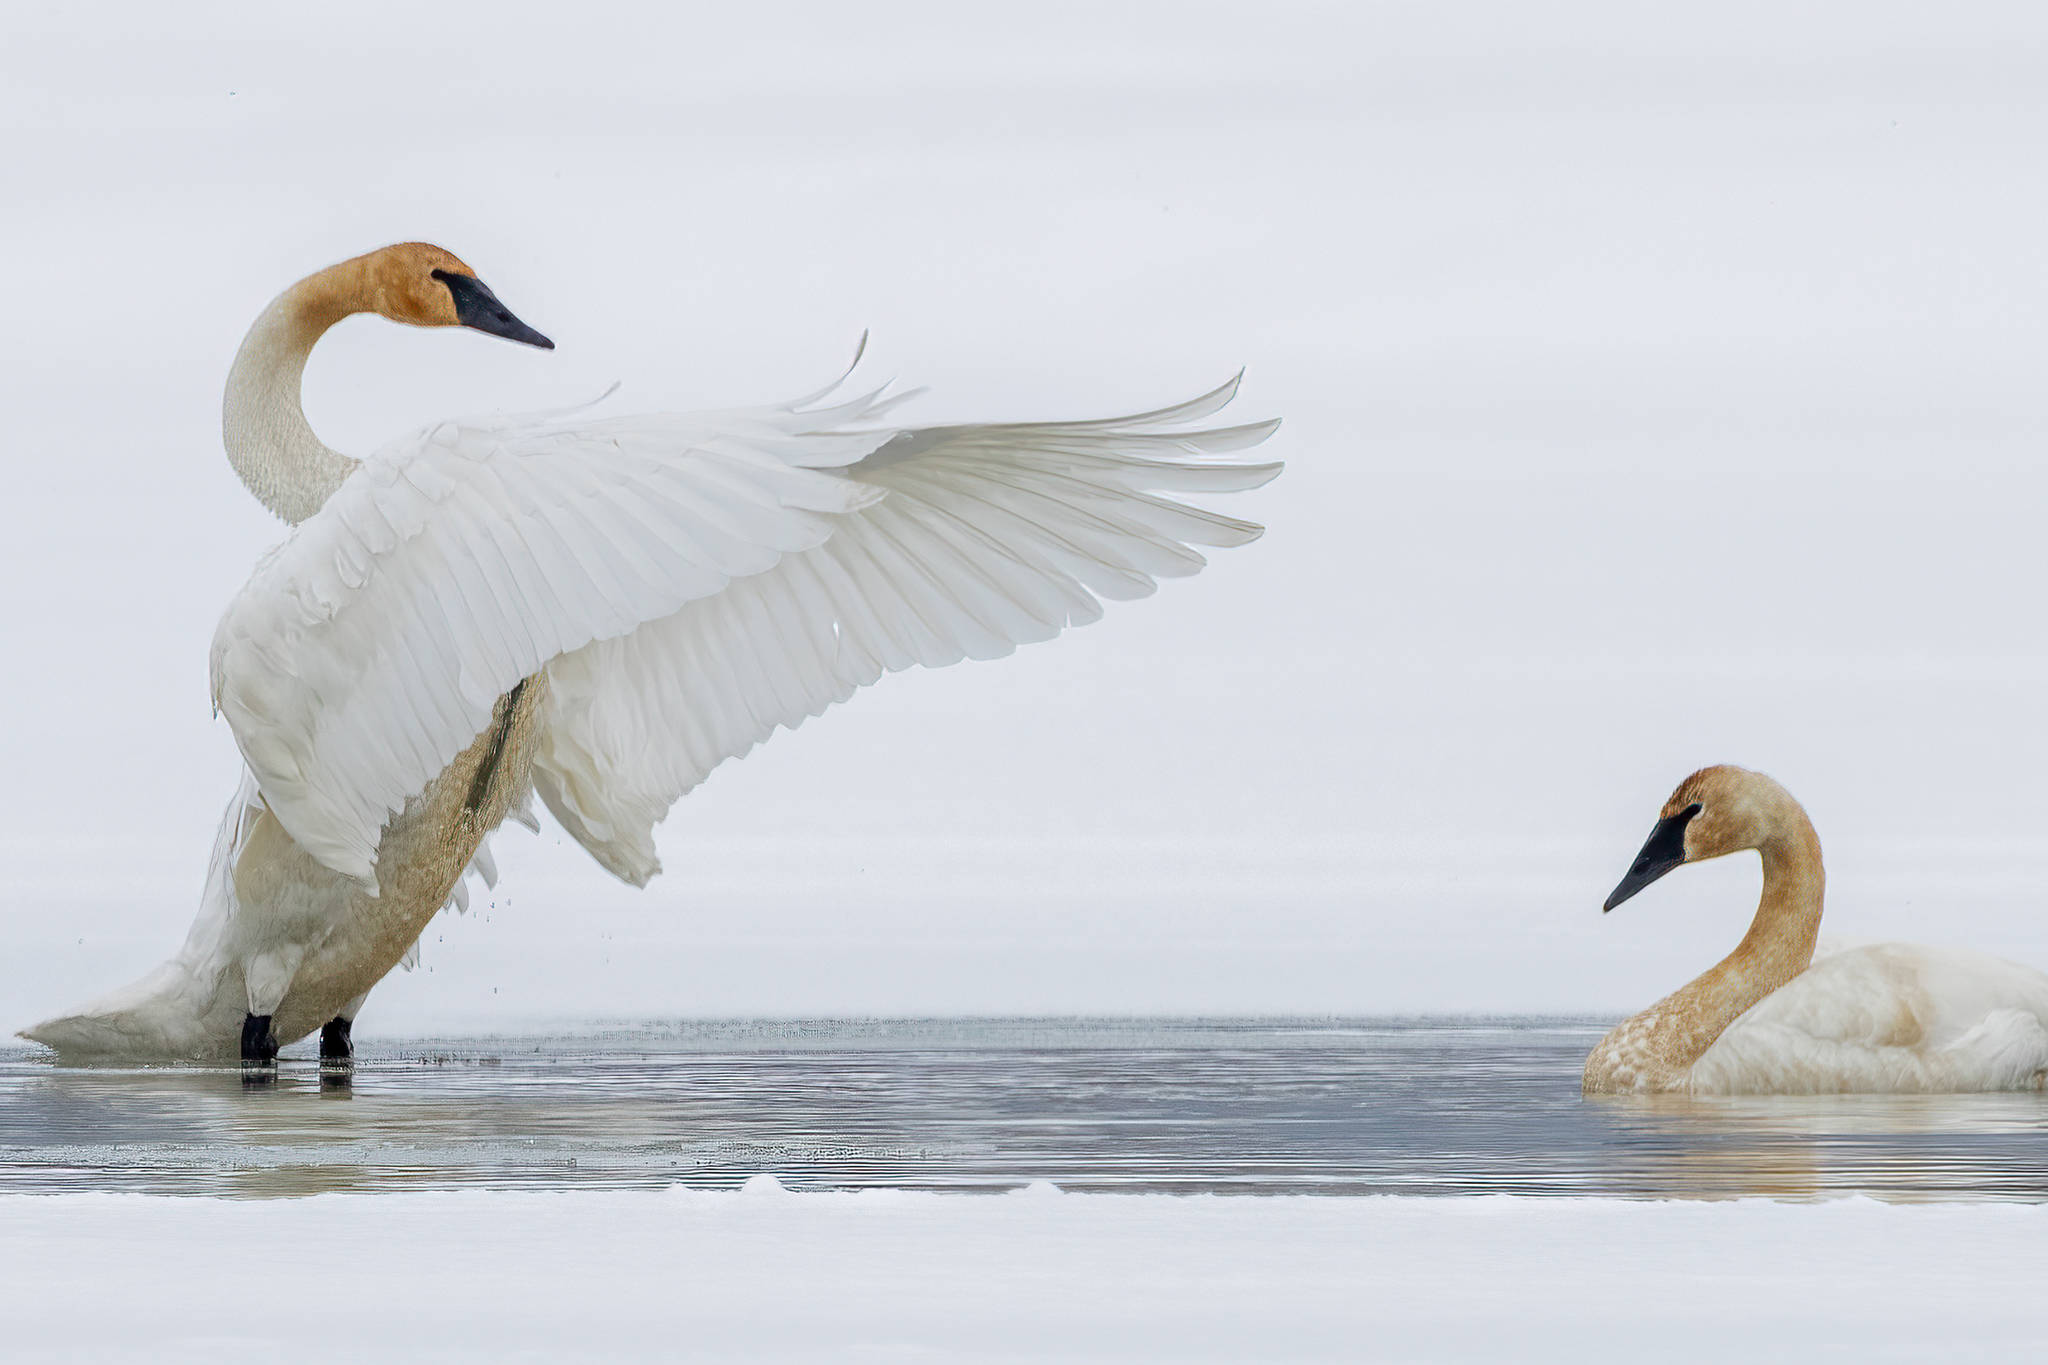 Trumpeter swans also appeared in a small patch of open water on Mendenhall Lake, a few days after equinox. (Courtesy Photo / Kerry Howard)